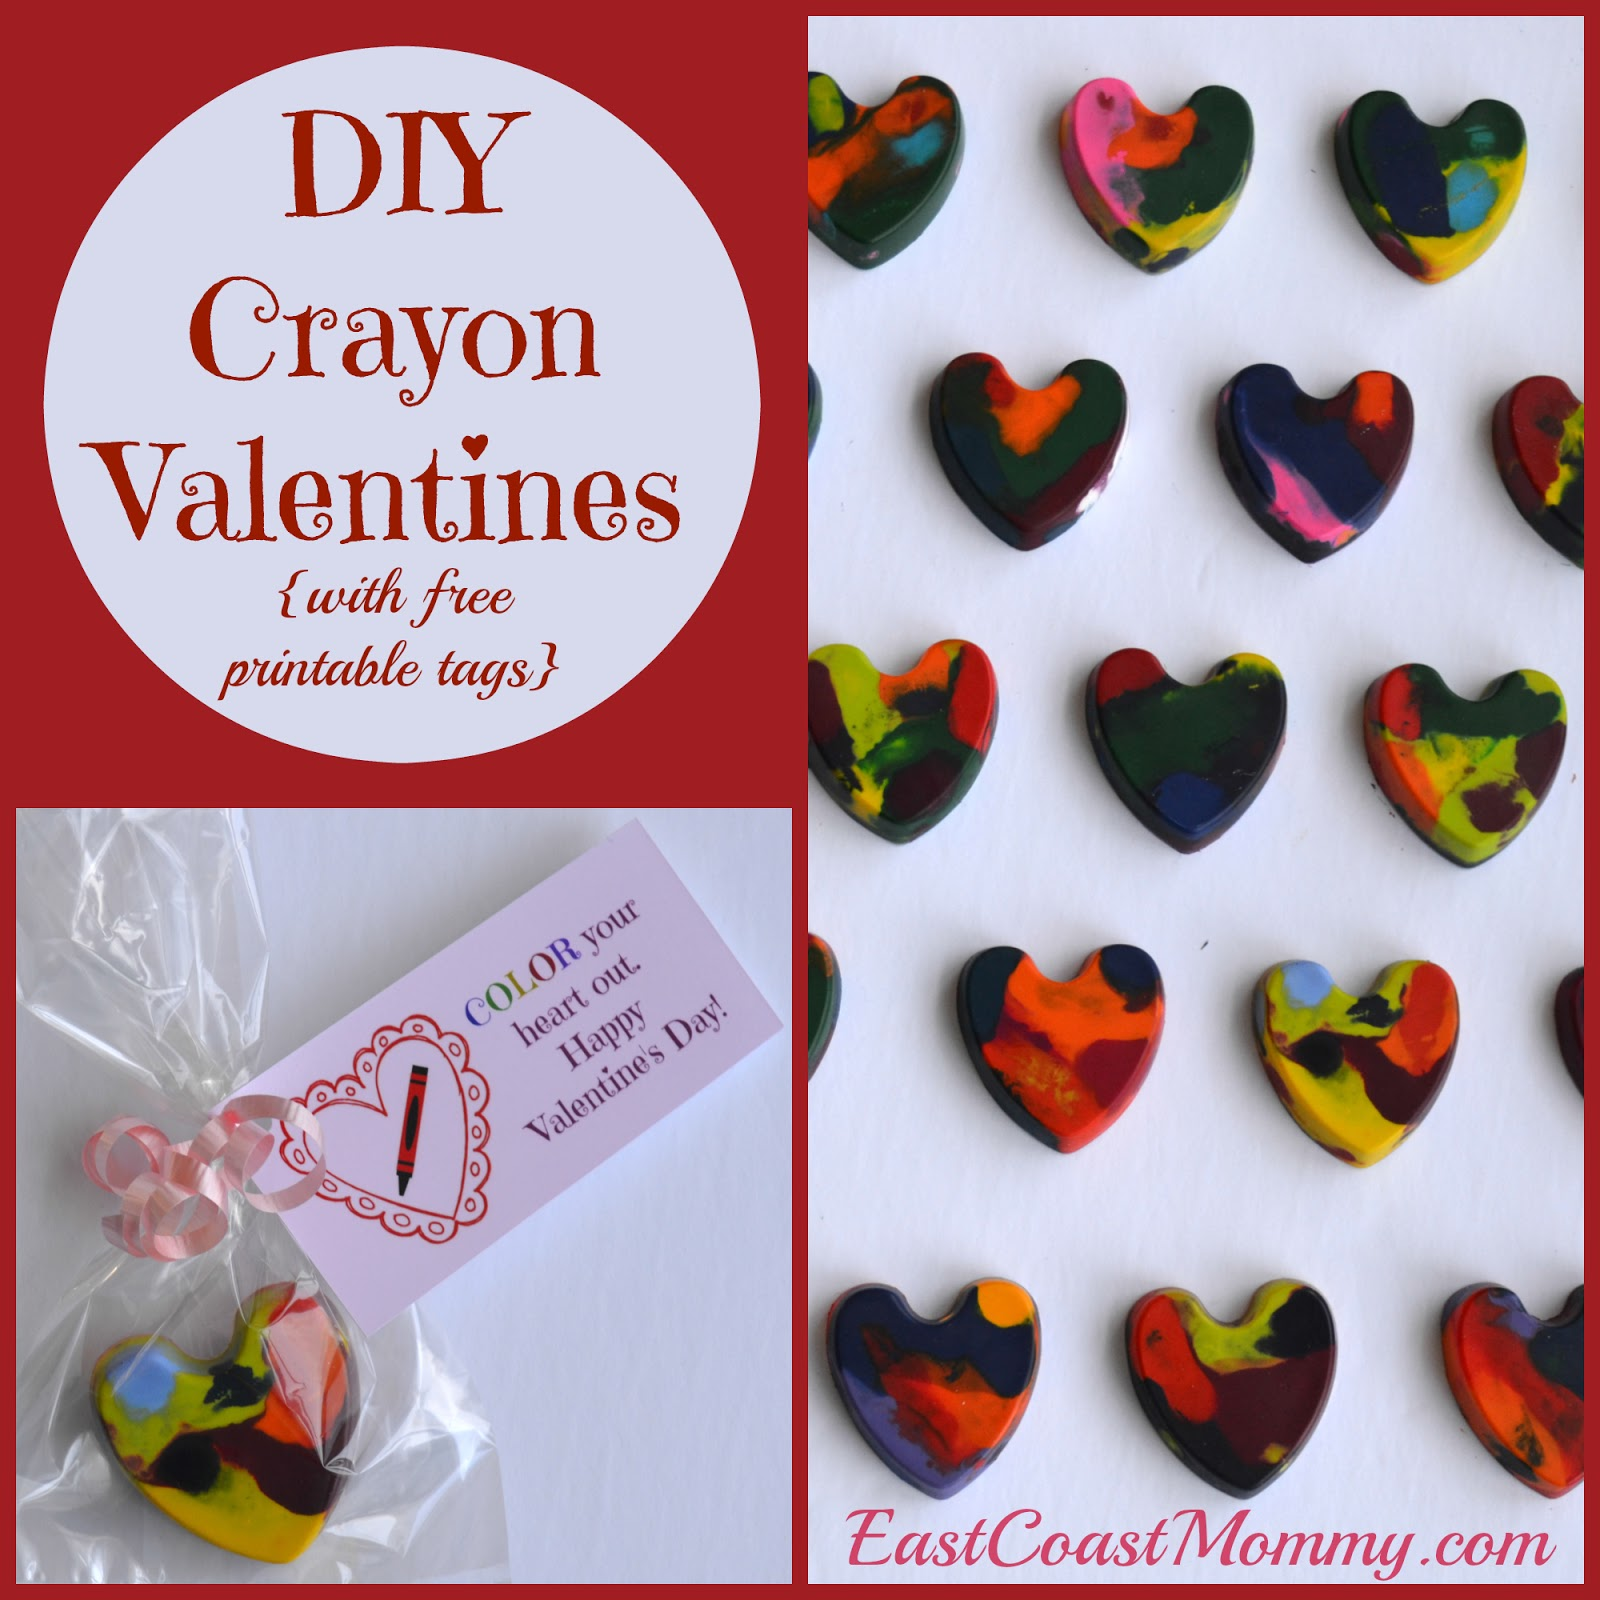 east coast mommy crayon valentines with free printable tags